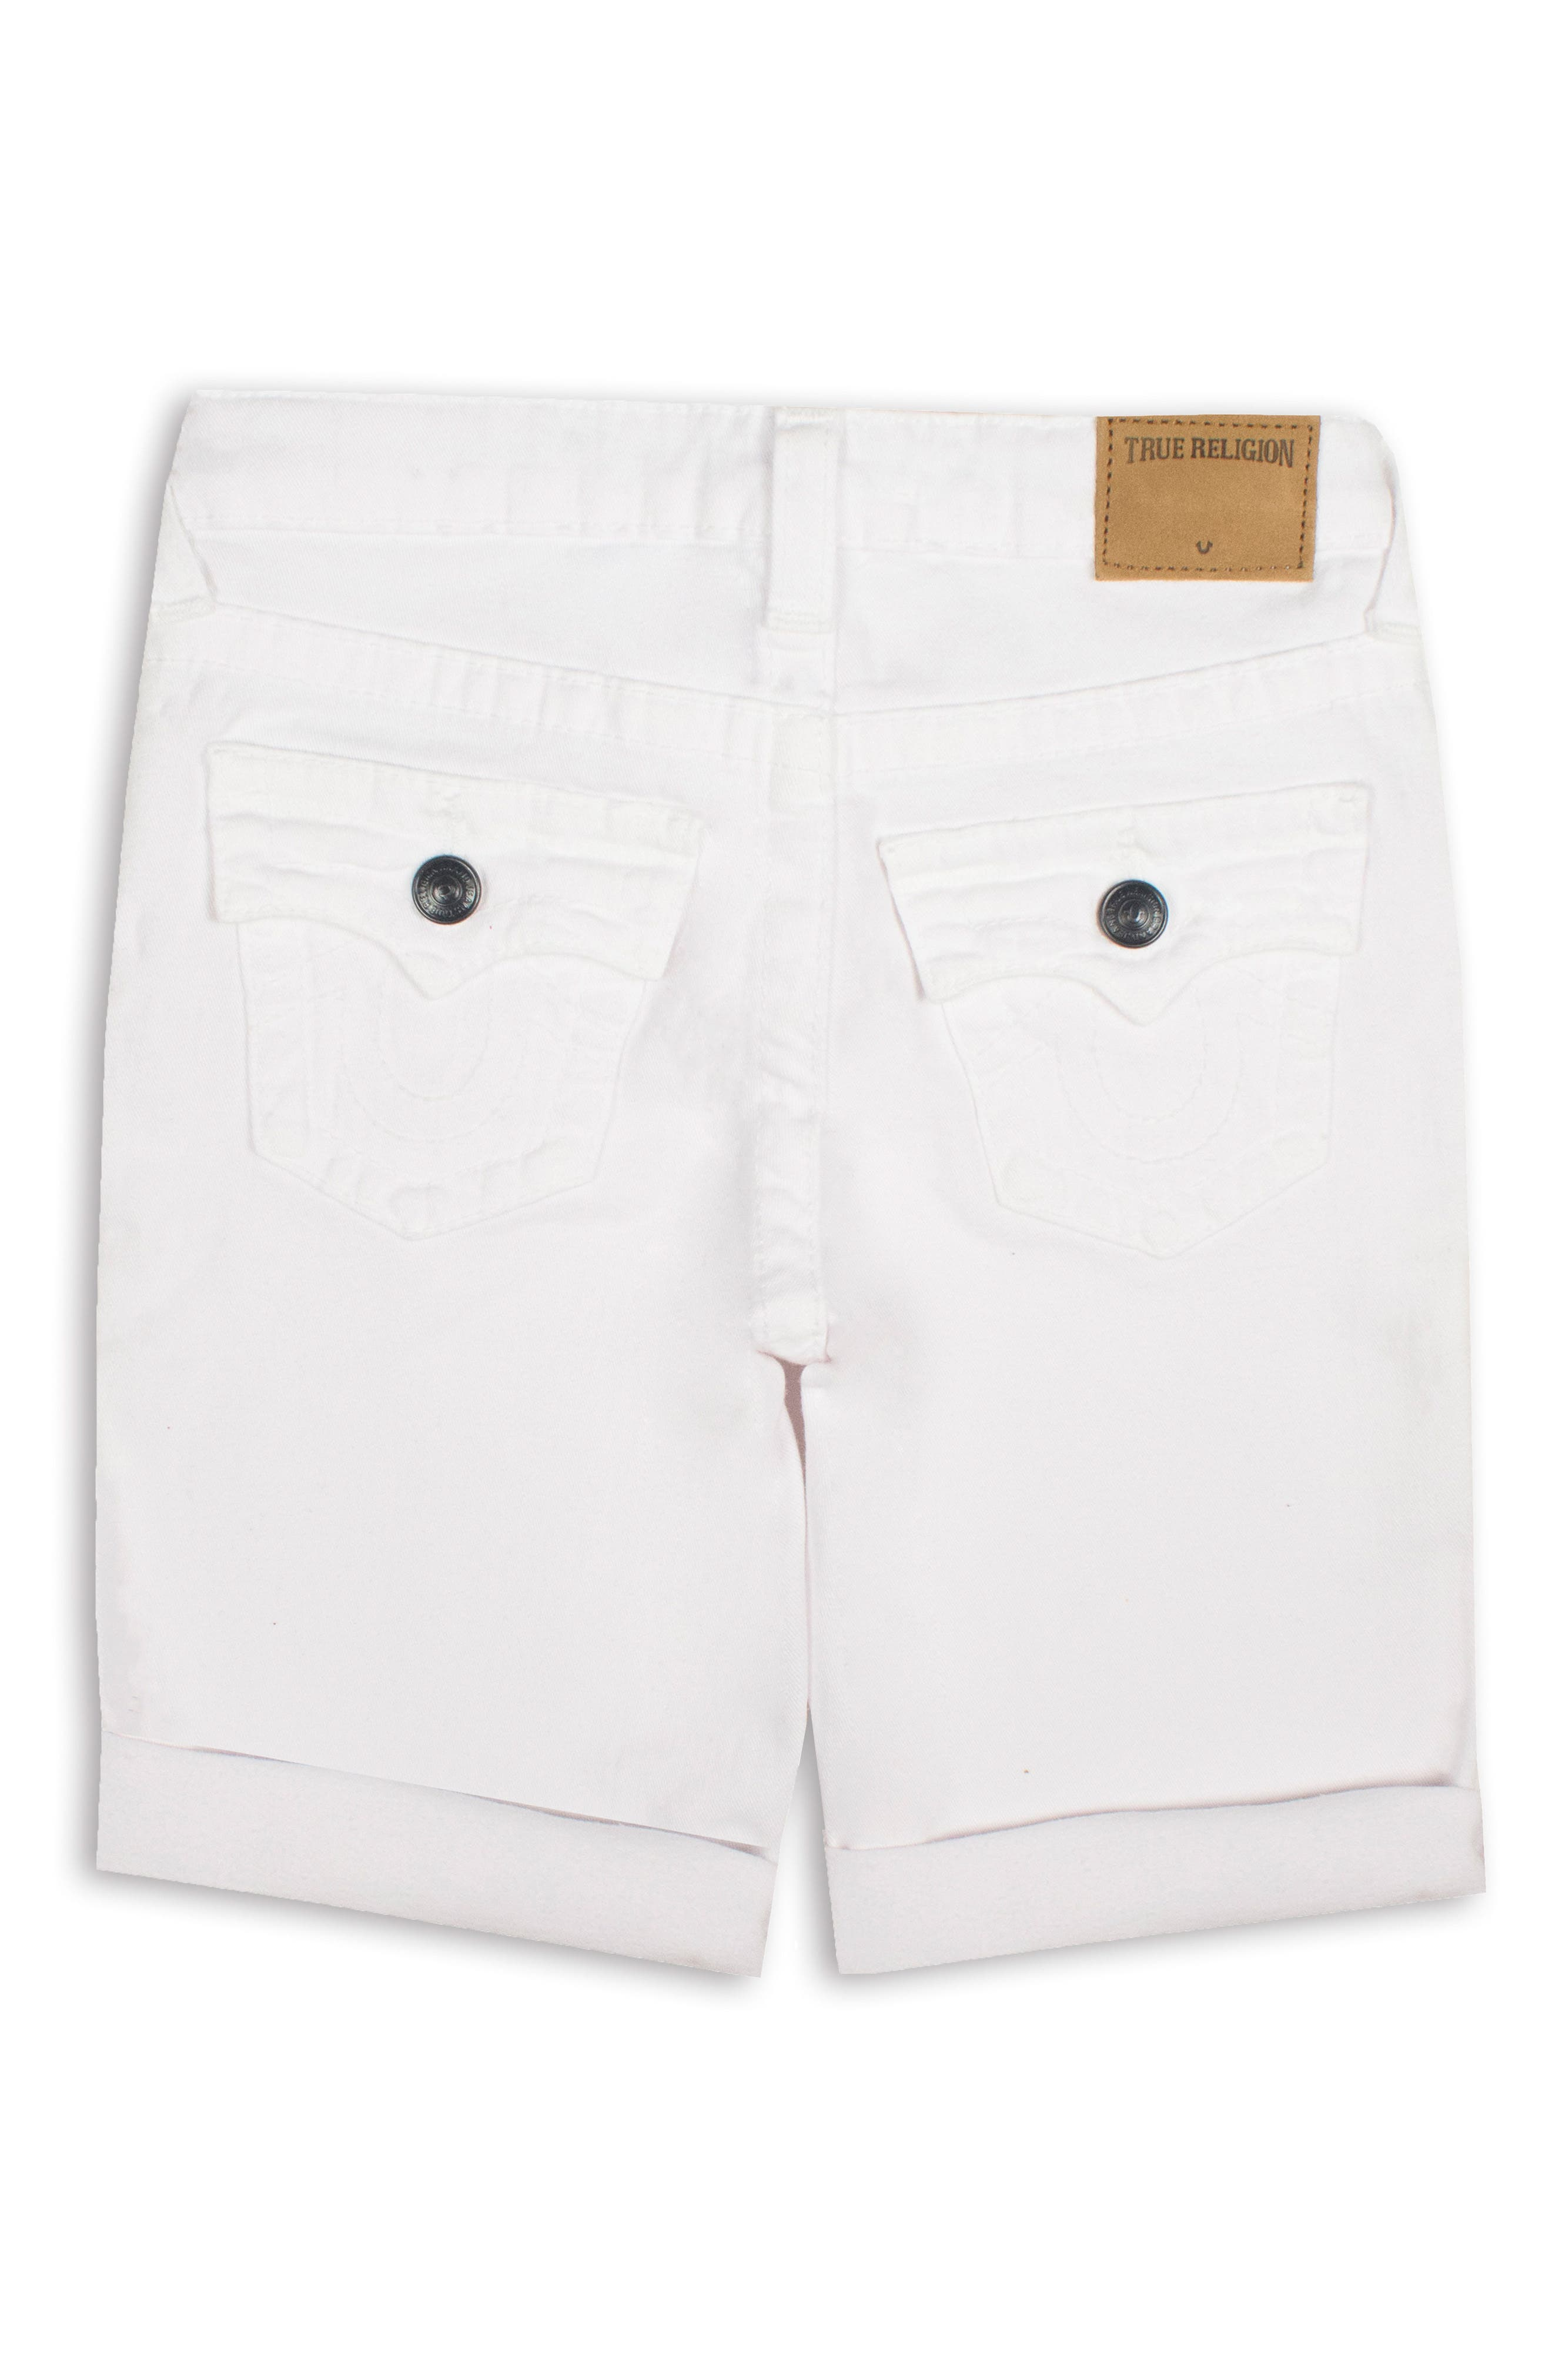 Geno Denim Shorts,                             Main thumbnail 1, color,                             100